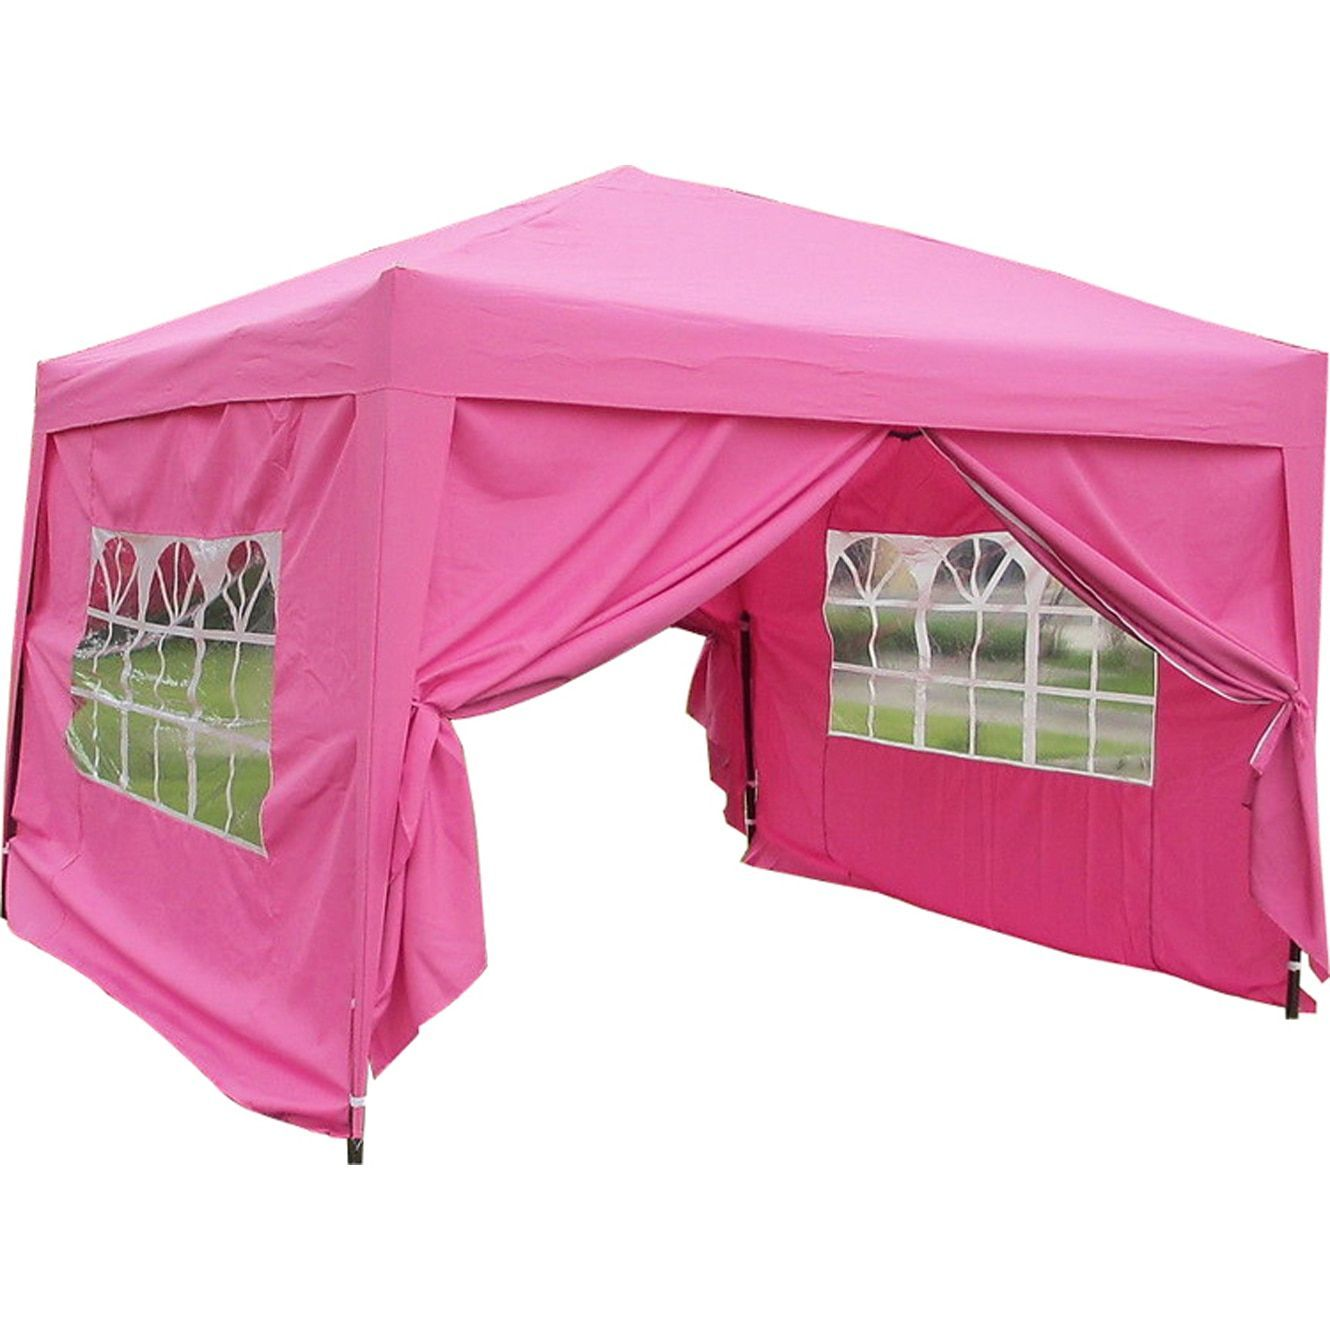 MCombo 10x10 ft EZ POP UP 4 Walls Canopy Party Tent Gazebo With Sides (Pink10  sc 1 st  Pinterest & MCombo 10x10 ft EZ POP UP 4 Walls Canopy Party Tent Gazebo With ...